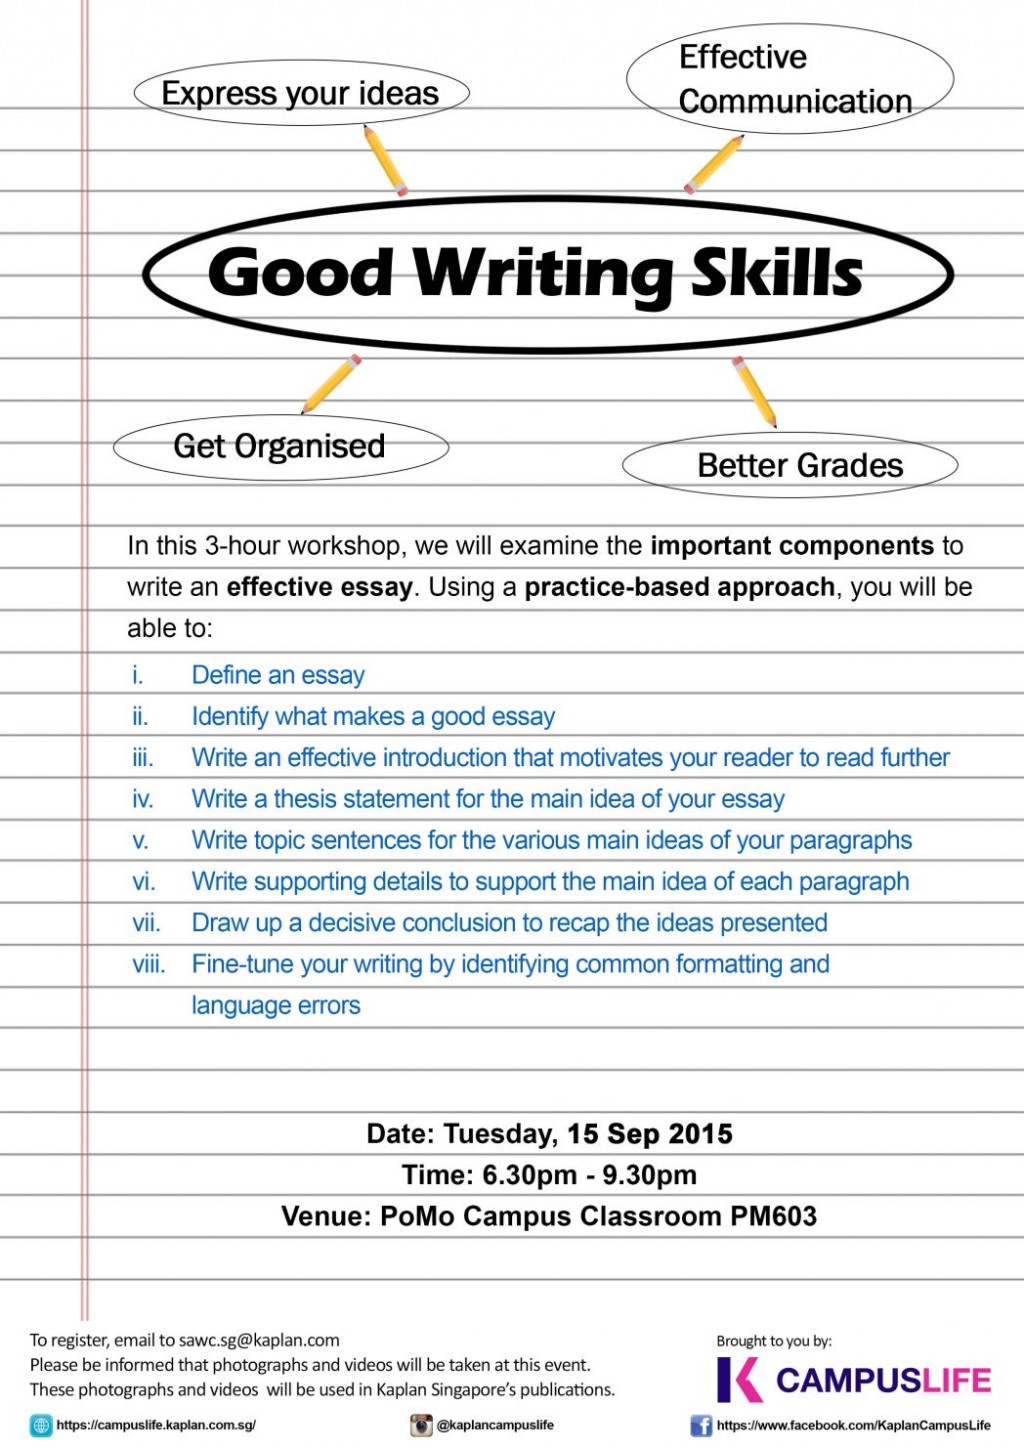 003 Essay Writing Skills Example Good Skill English Improving Online Improve My Developing Astounding In Urdu Ppt For Ielts Large